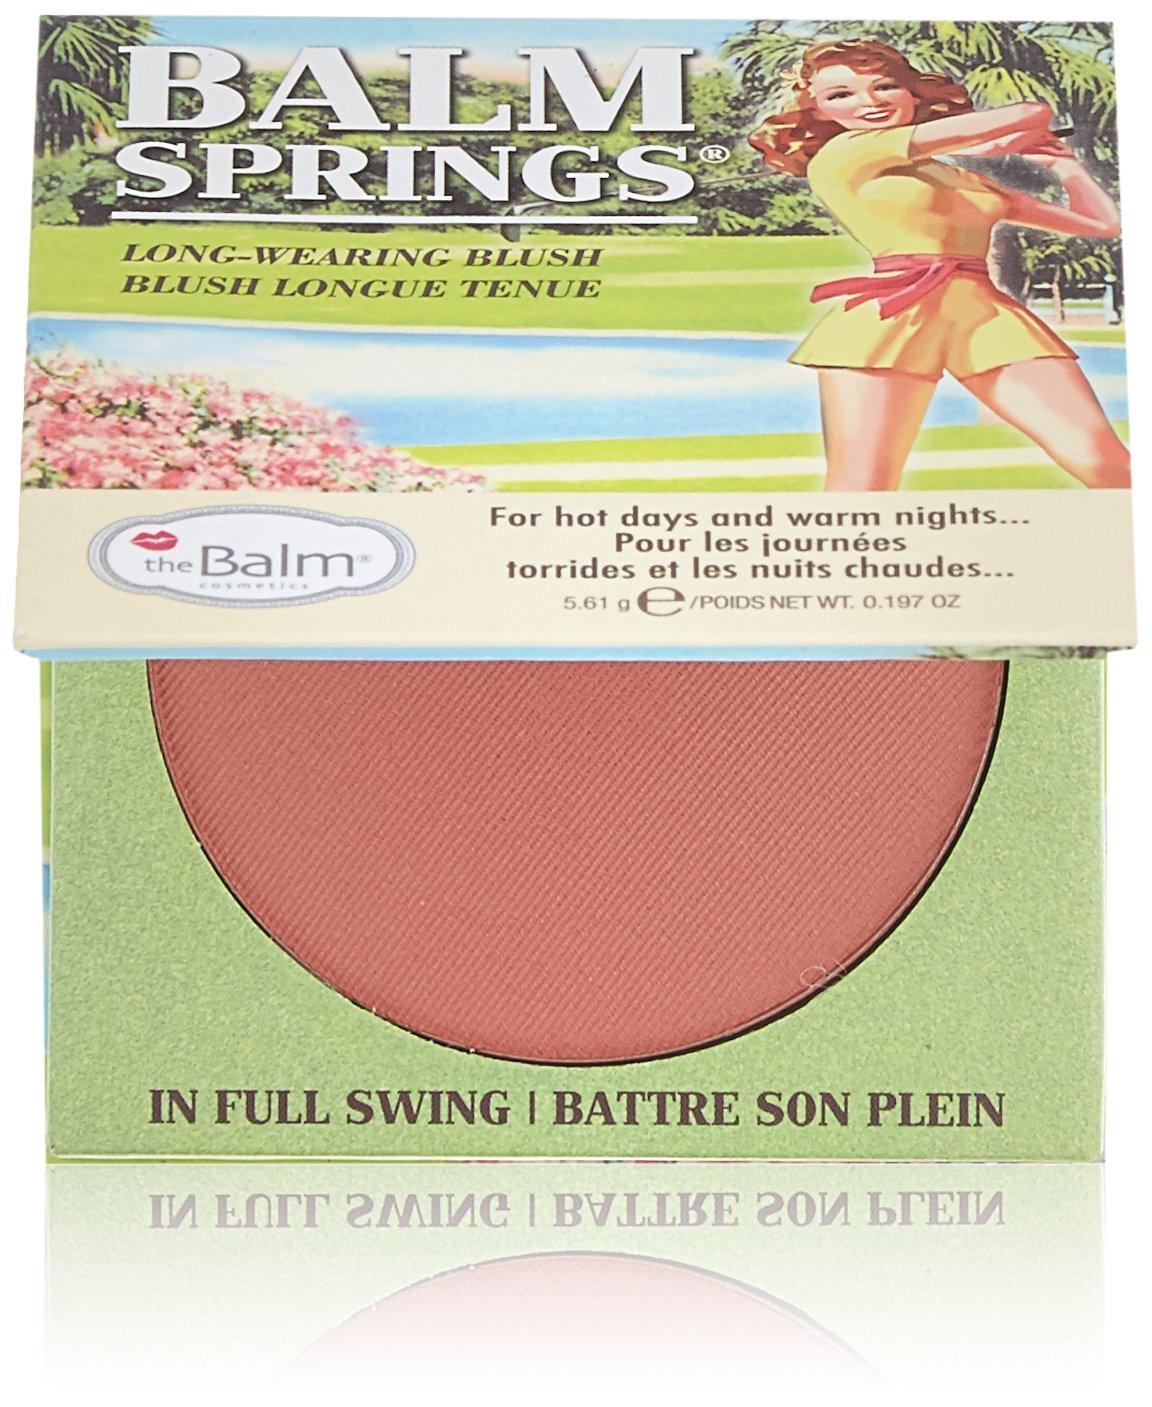 Blush hot mama da the balm Amazon Com Thebalm Earthy Rose Balm Springs Multifunctional Flawless Highlighter Blush Makeup Pressed Staining Face Powder Talc Free Fade Resistant Formula Beauty Personal Care